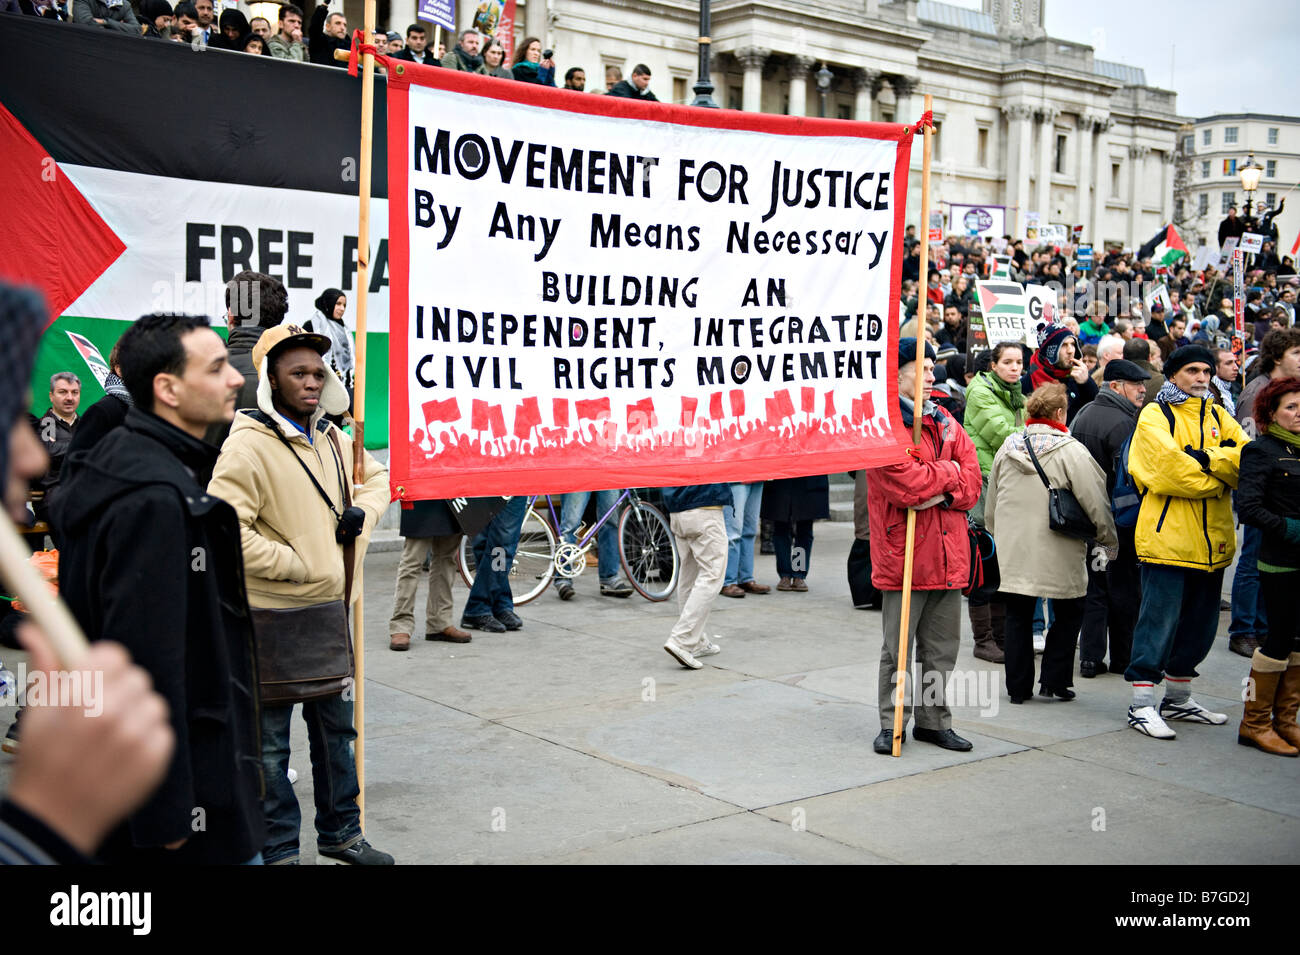 Demonstrators at a rally protesting against Israeli attacks on Gaza, January 2009 - Stock Image